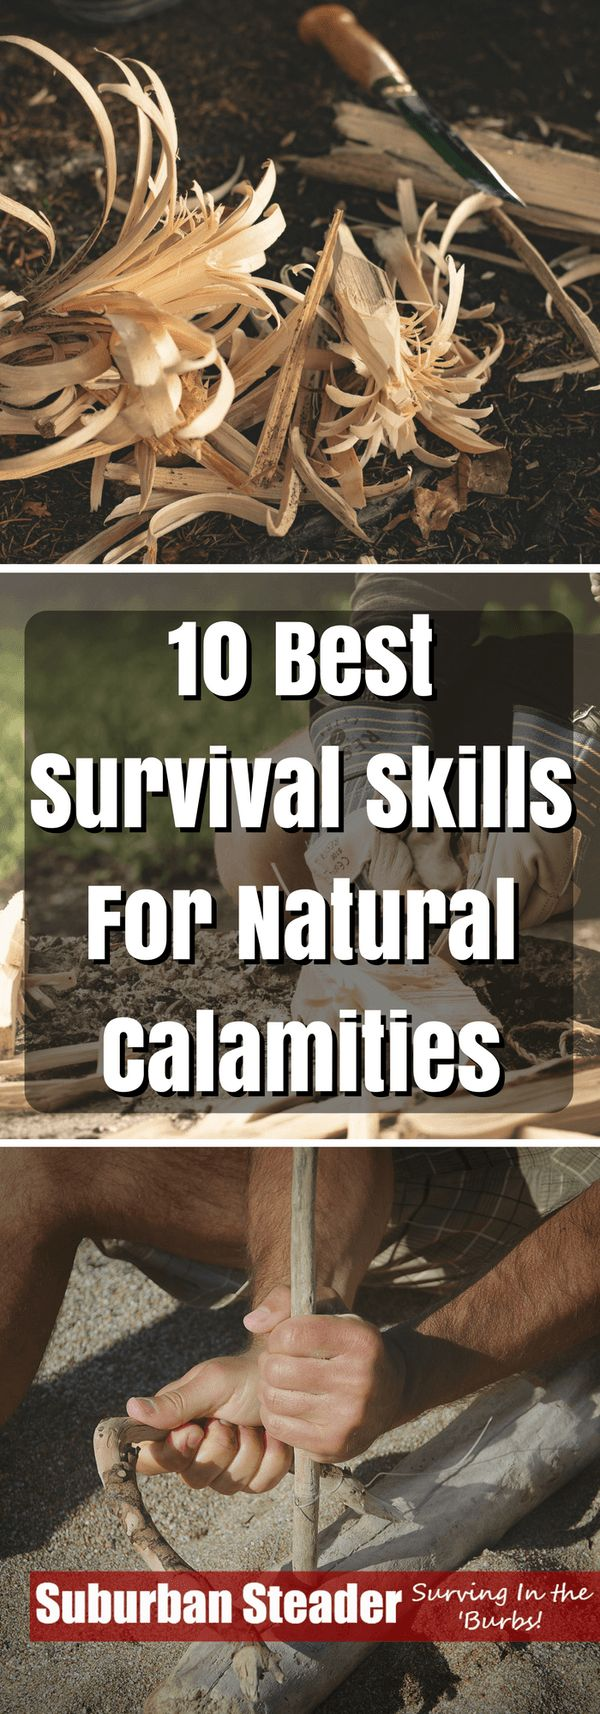 10 Best Survival Skills for Natural Calamities